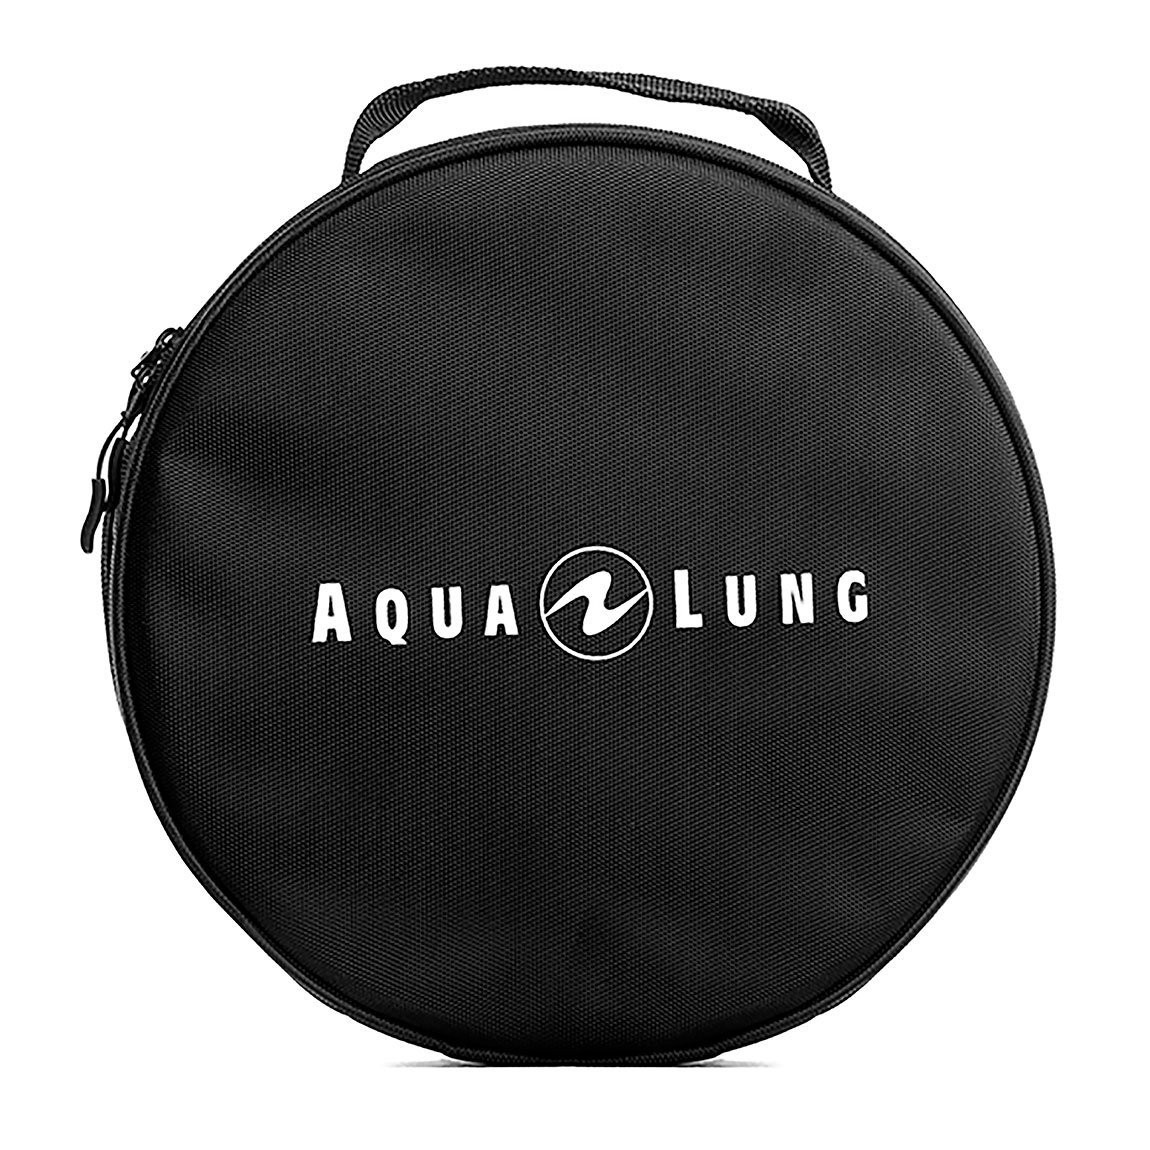 Aqualung - Explorer II Regulator Bag